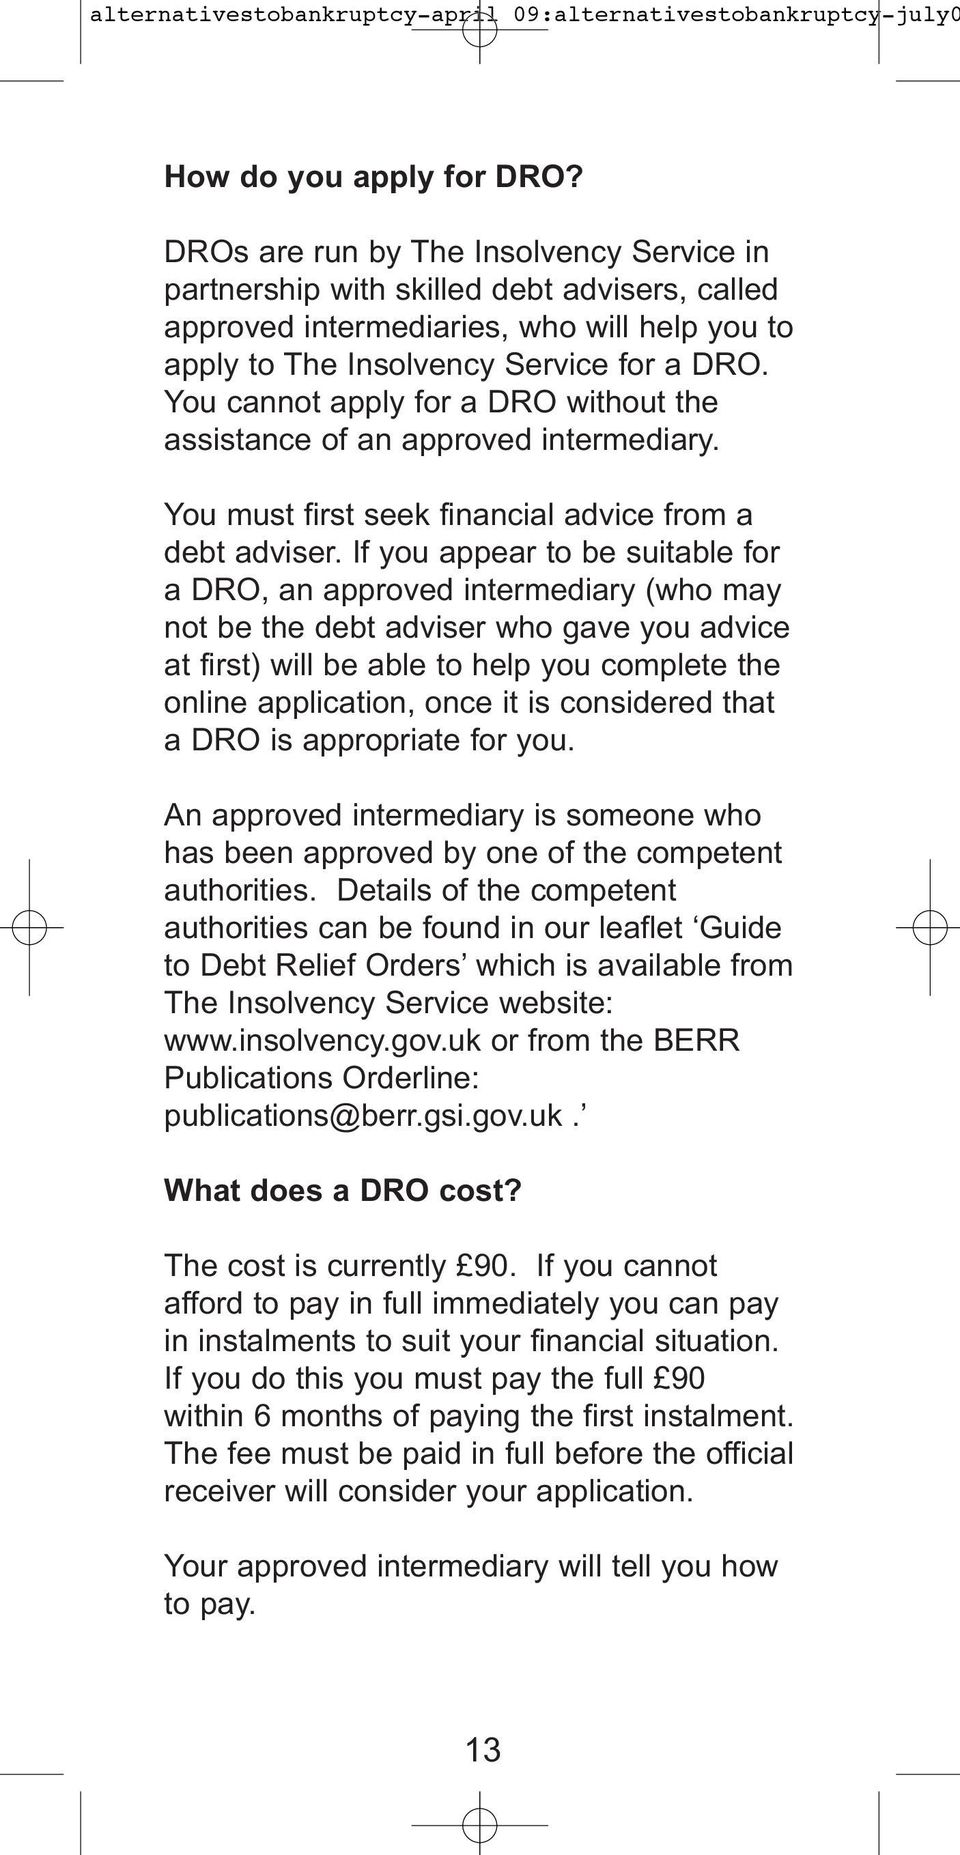 You cannot apply for a DRO without the assistance of an approved intermediary. You must first seek financial advice from a debt adviser.